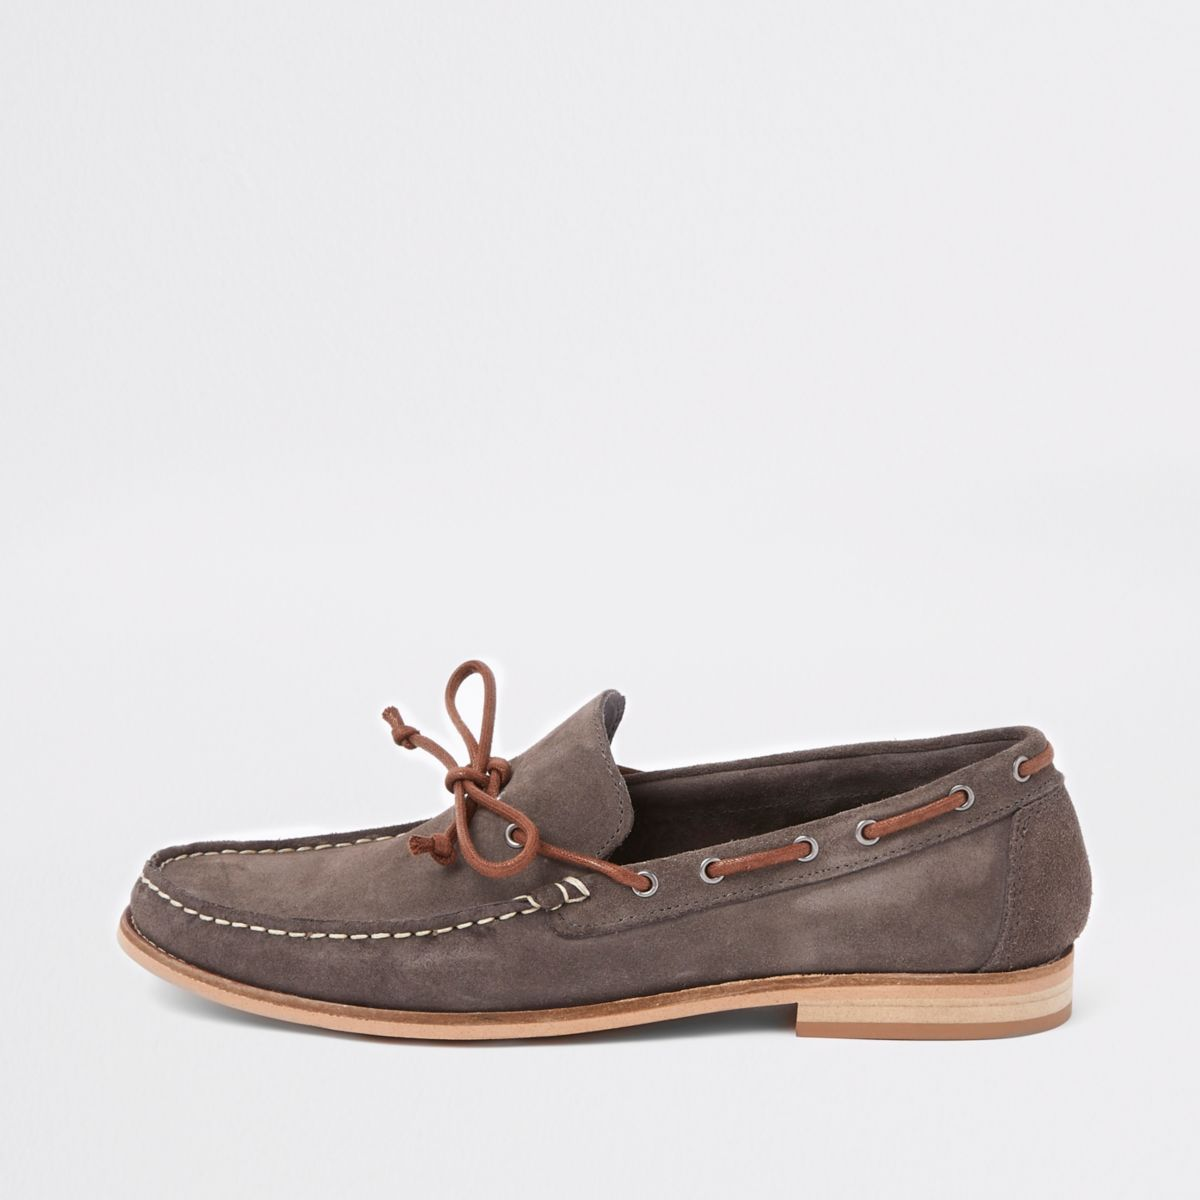 Brown suede tie front loafers